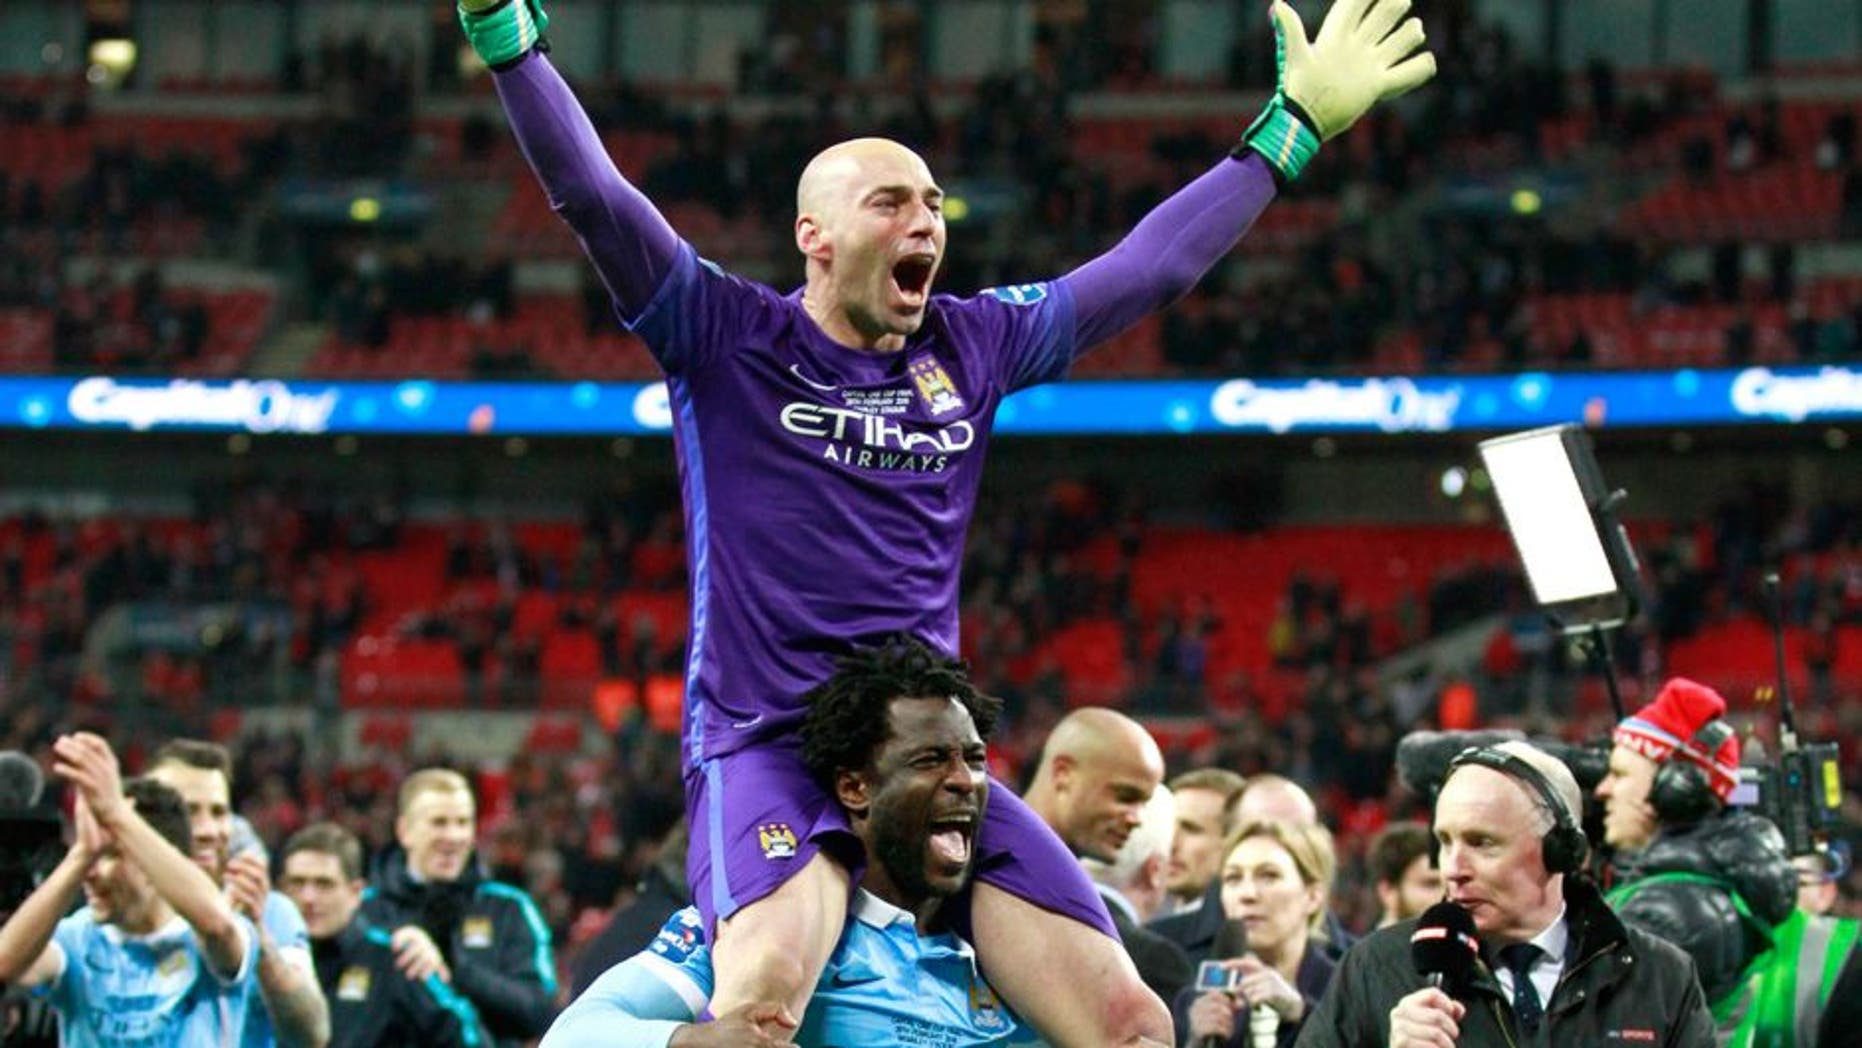 """Football Soccer - Liverpool v Manchester City - Capital One Cup Final - Wembley Stadium - 28/2/16 Manchester City's Wilfredo Caballero and Wilfried Bony celebrate after the game Action Images via Reuters / Paul Childs Livepic EDITORIAL USE ONLY. No use with unauthorized audio, video, data, fixture lists, club/league logos or """"live"""" services. Online in-match use limited to 45 images, no video emulation. No use in betting, games or single club/league/player publications. Please contact your account representative for further details."""